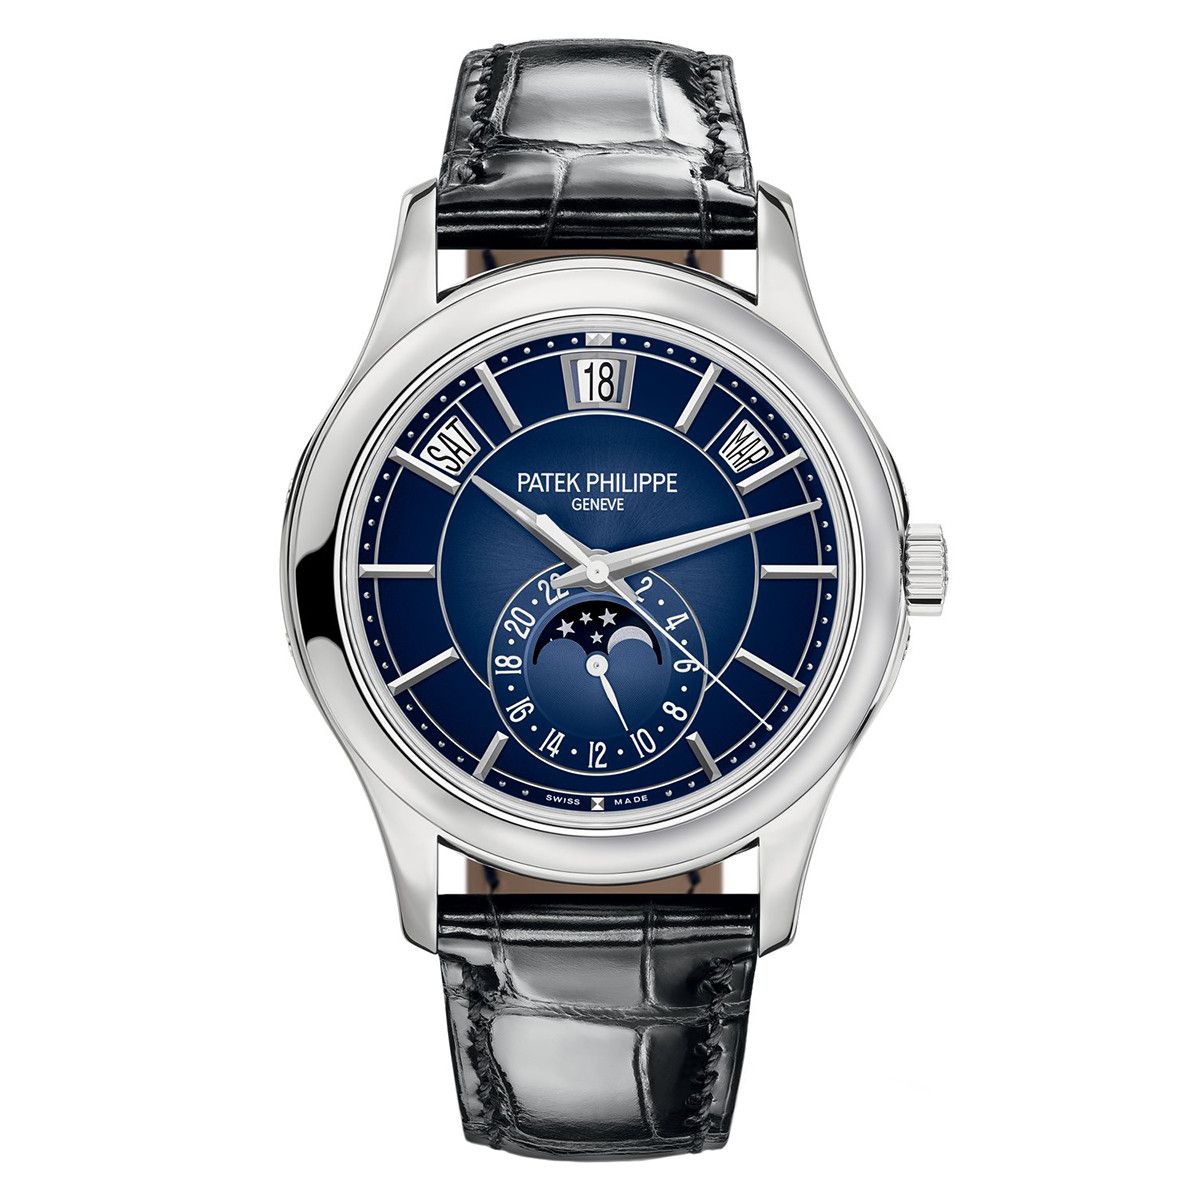 Annual Calendar White Gold (5205G-013)